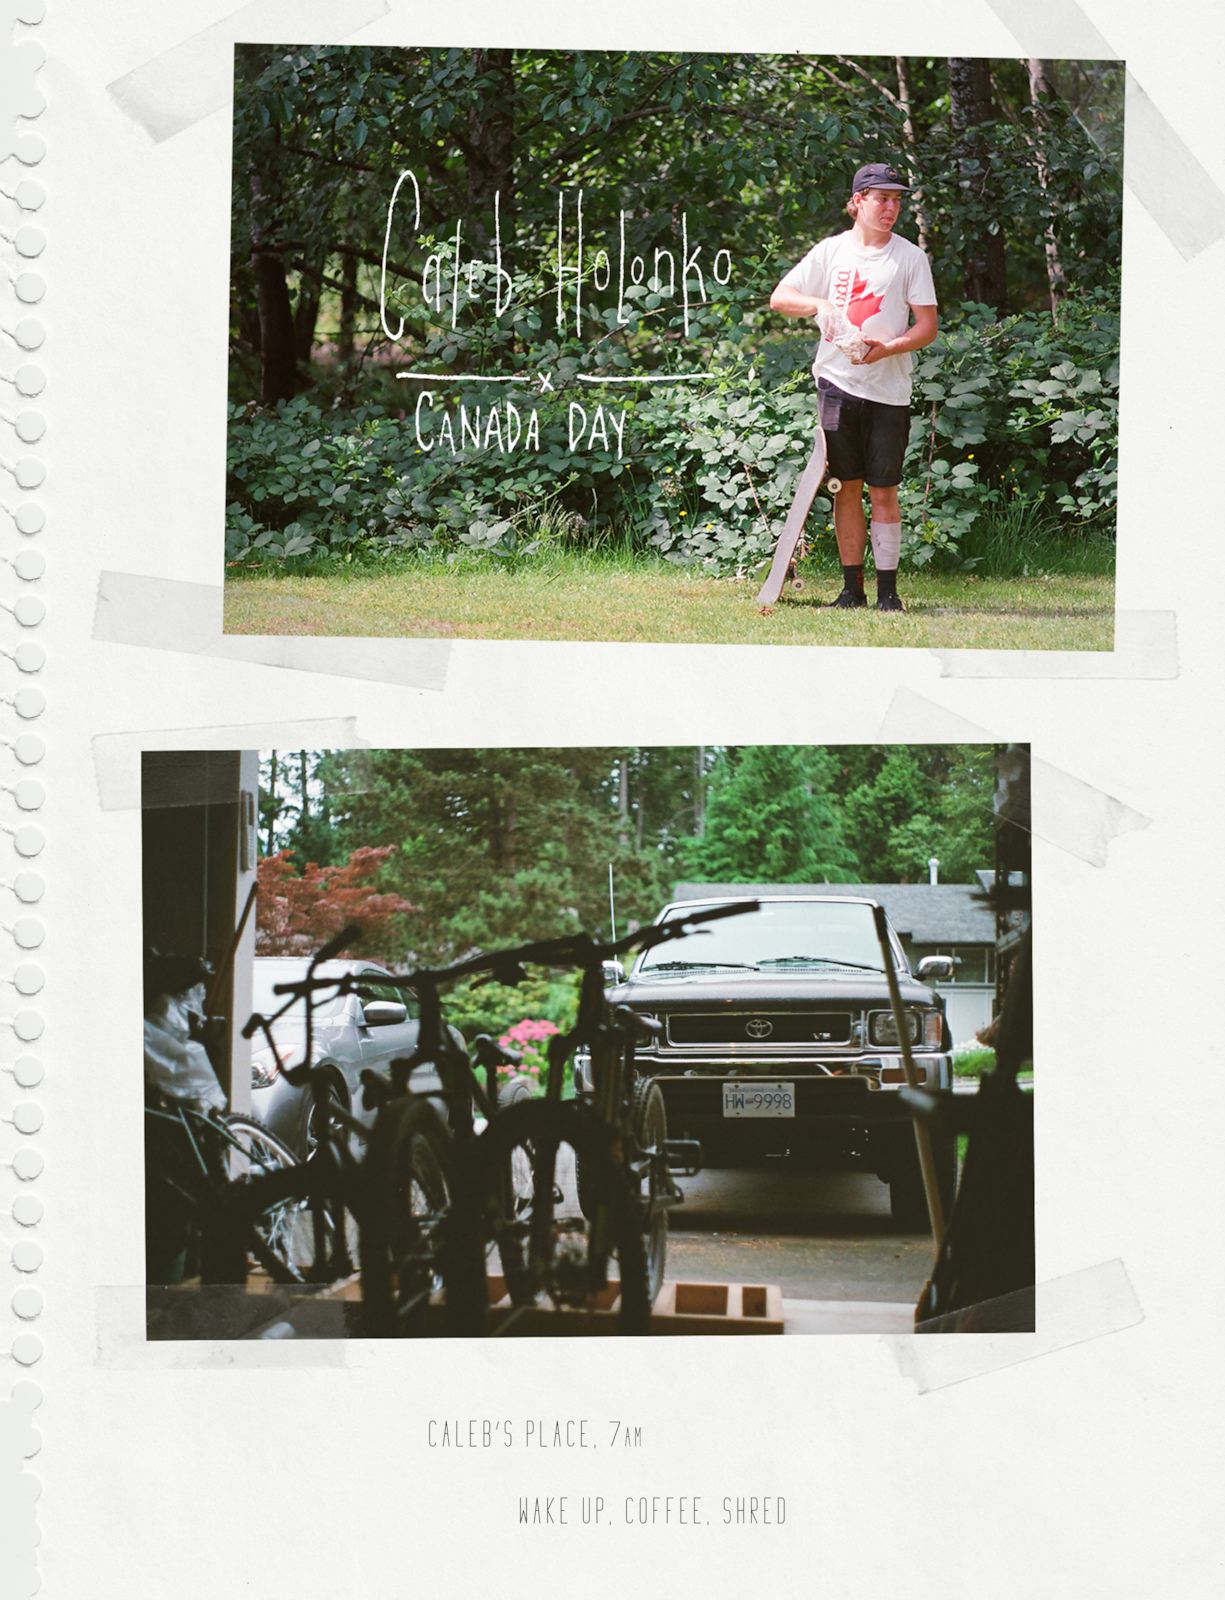 Images for Canada Day with Caleb Holonko article.